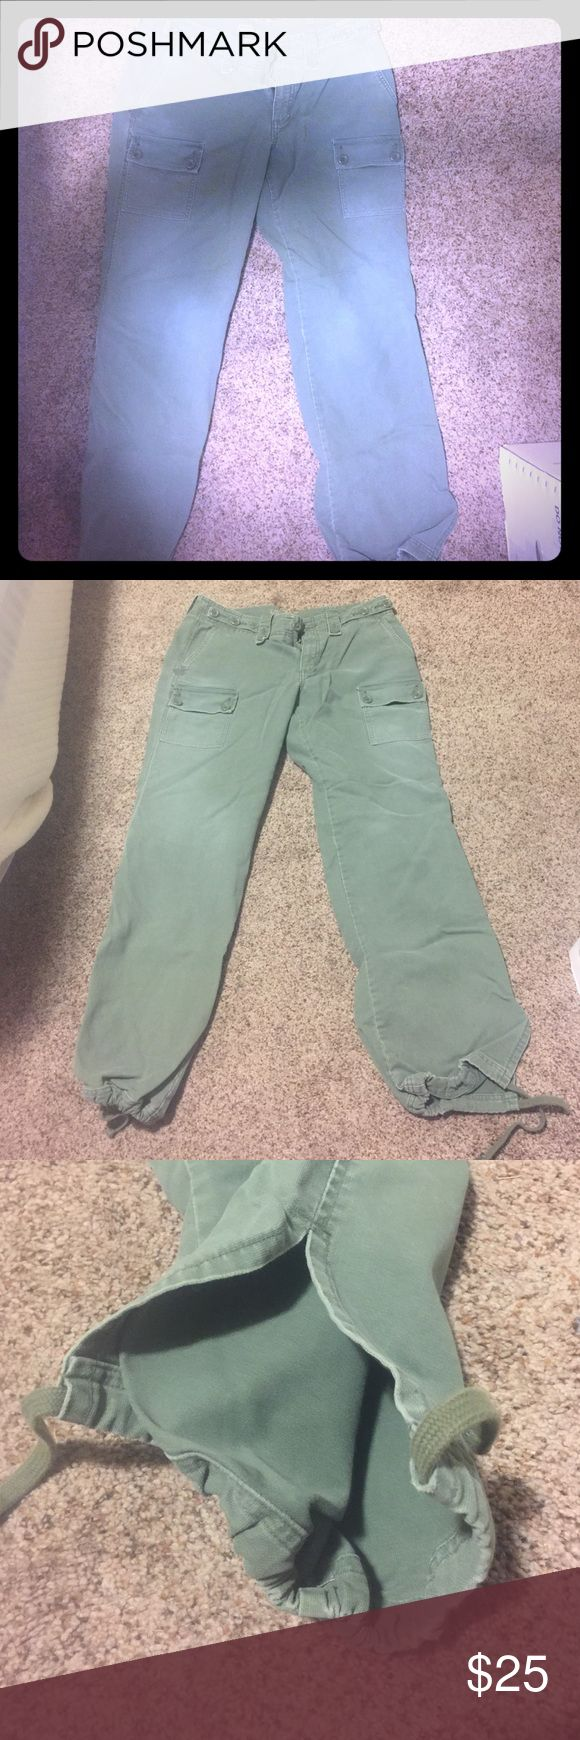 AE olive green canvas pants Size 12 American Eagle draw string legs zipper closure with button all functional. Worn twice. Thick canvas material. American Eagle Outfitters Pants Trousers